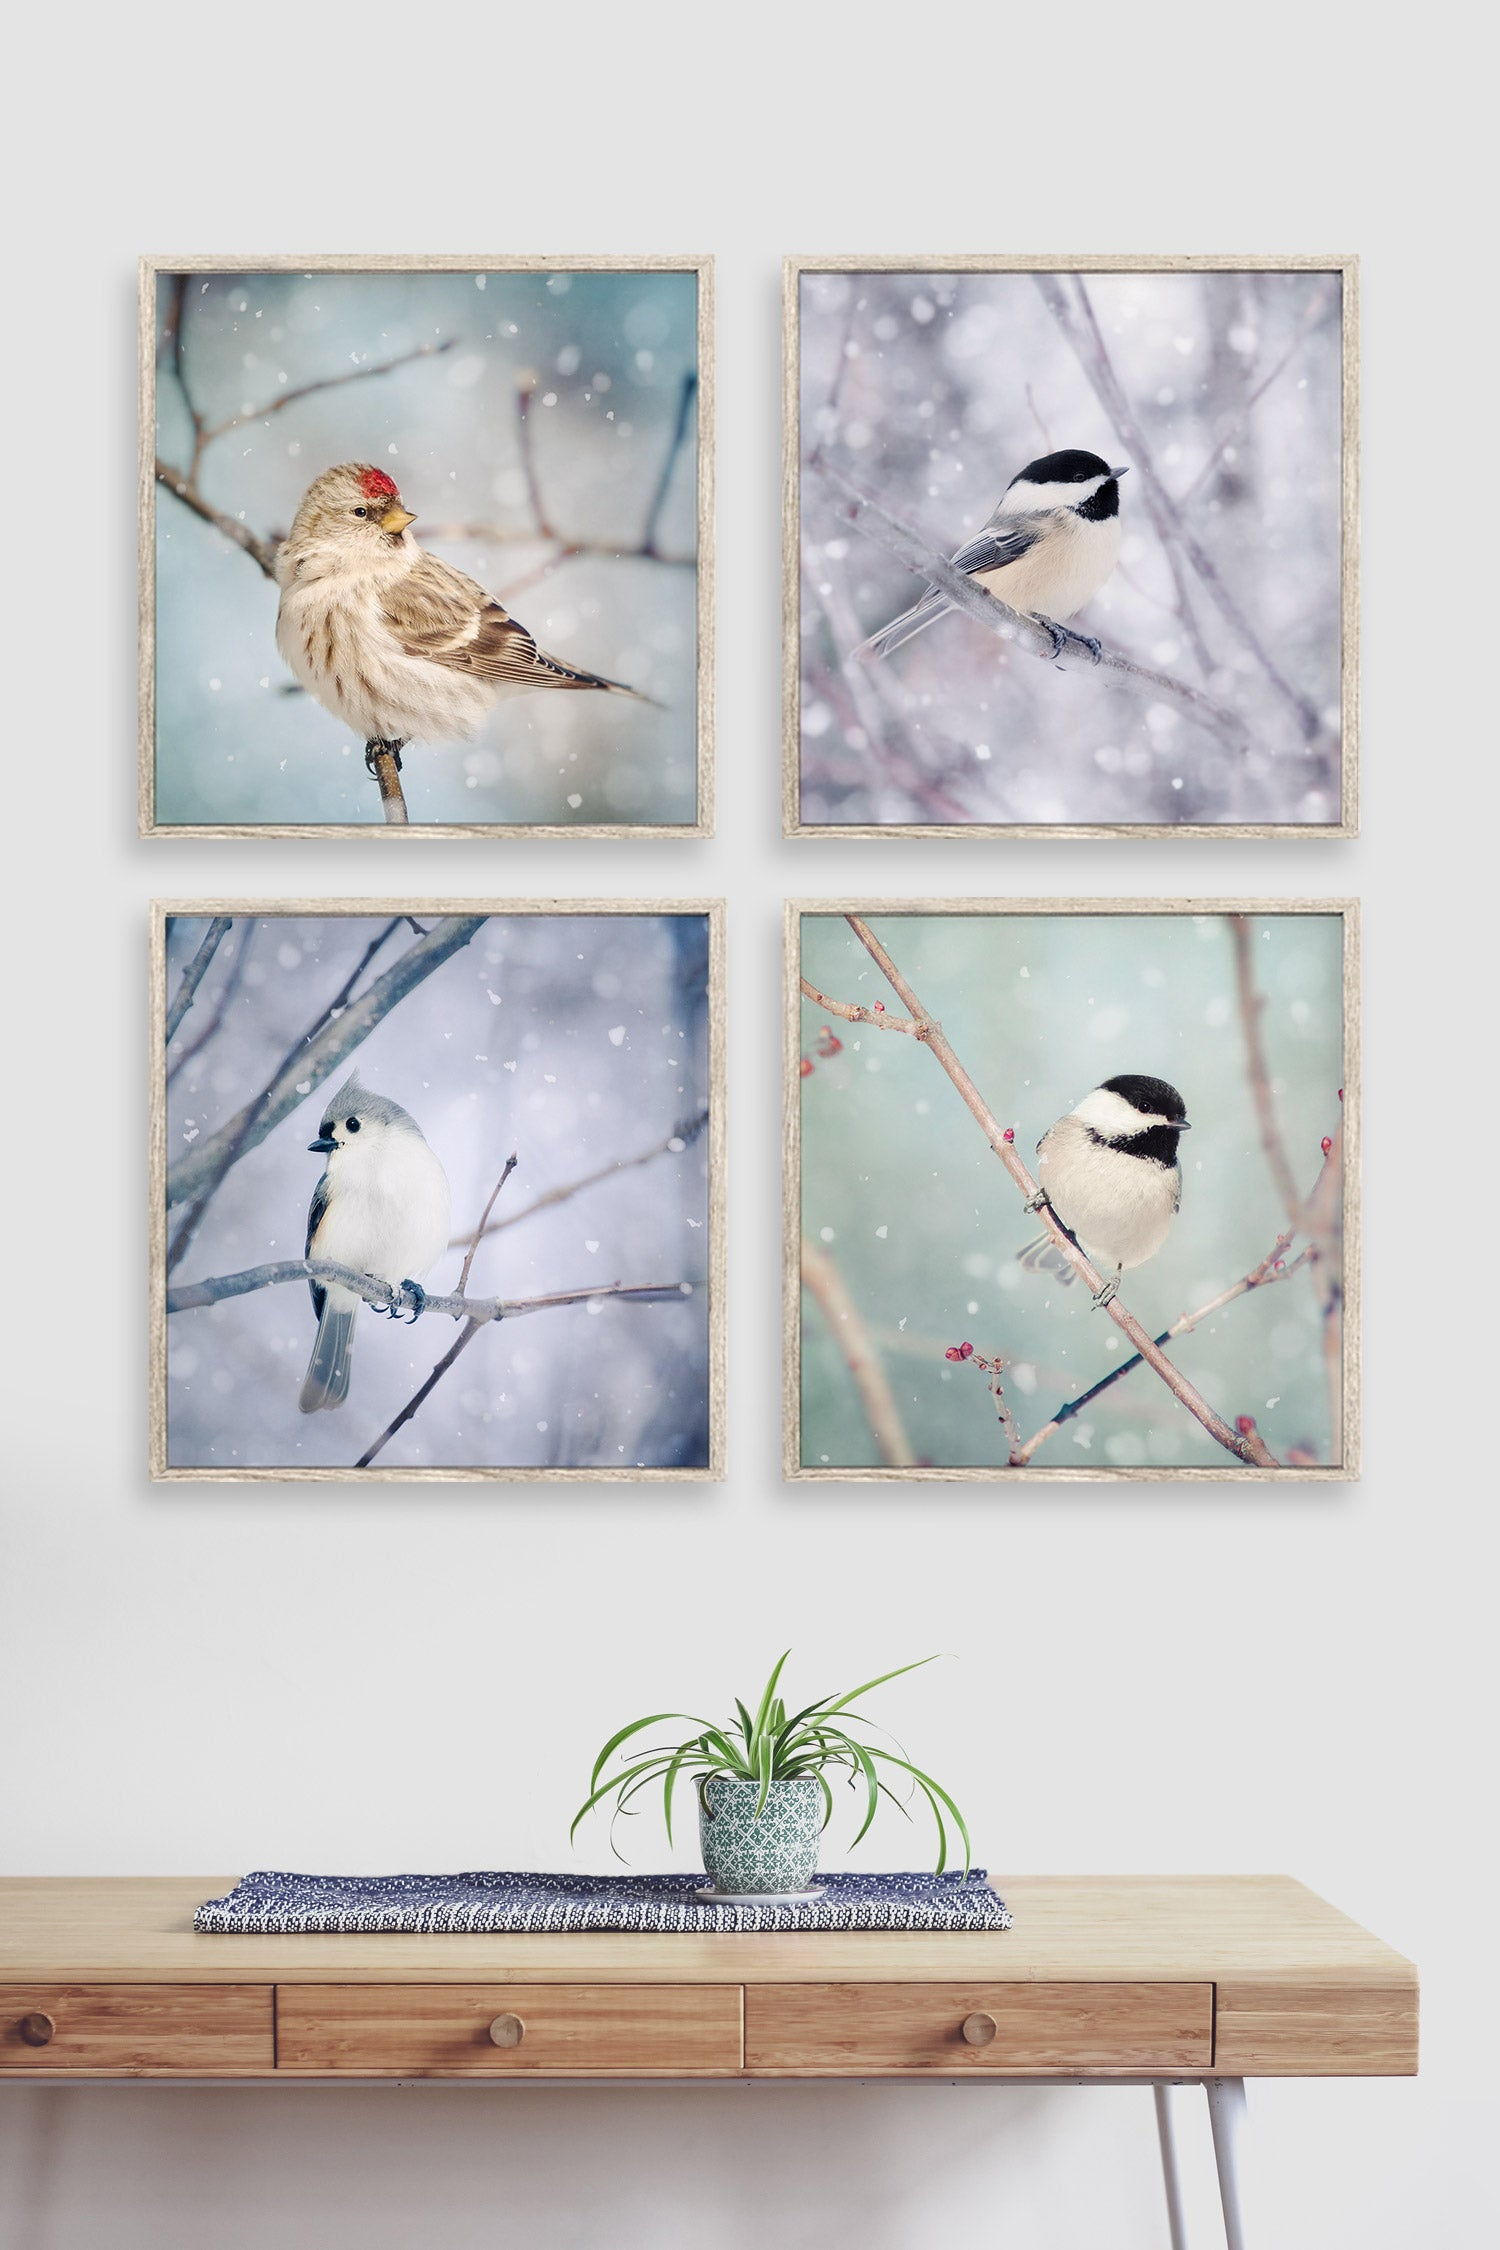 Set of 4 photography prints of birds in snow